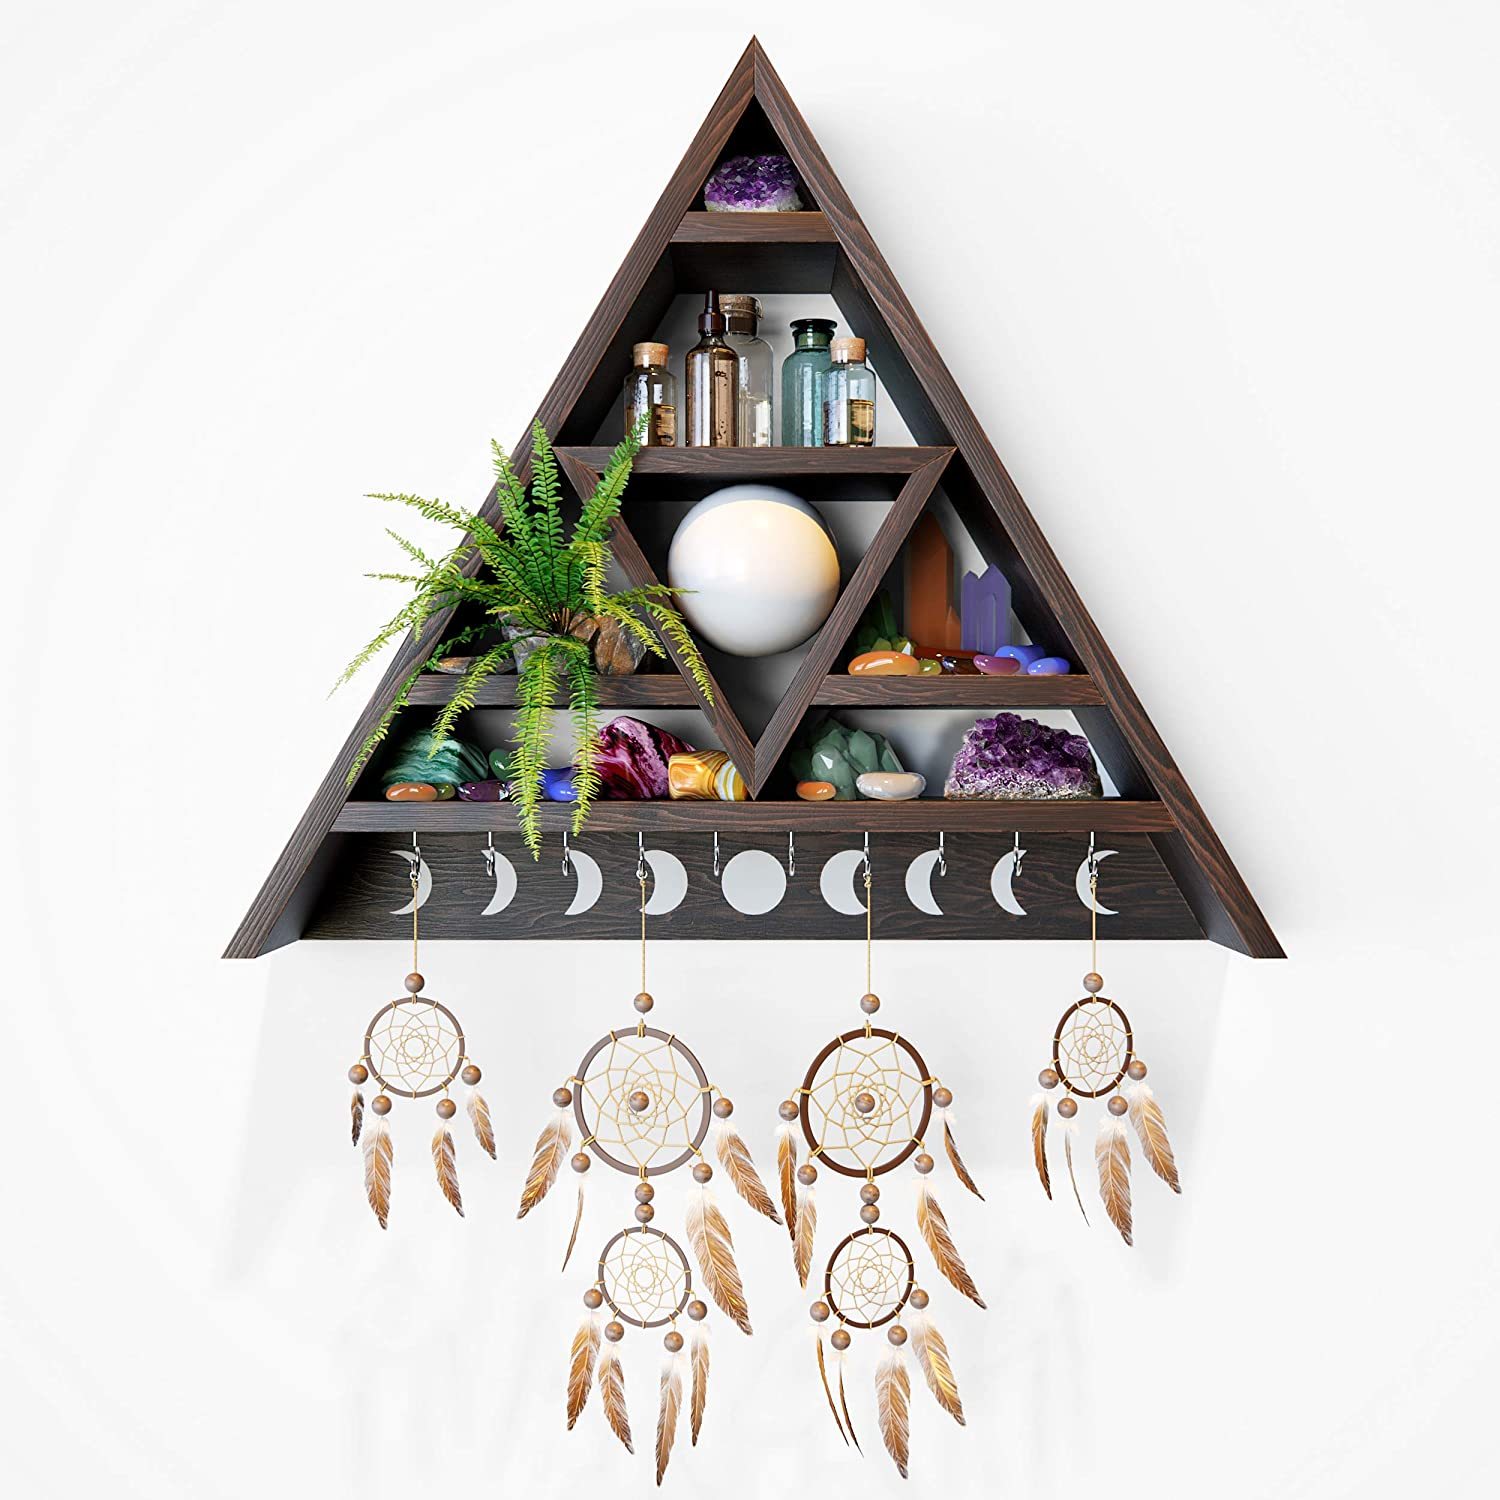 AMERICA EMPIRE Meditation Triangle Shelf for Crystals   Triangle Wall Shelf. Crystal Shelf Display for Stones. Witchy Decor for The Home, Crystal Holder. Crystal Display Shelf   Witchy Home Decor